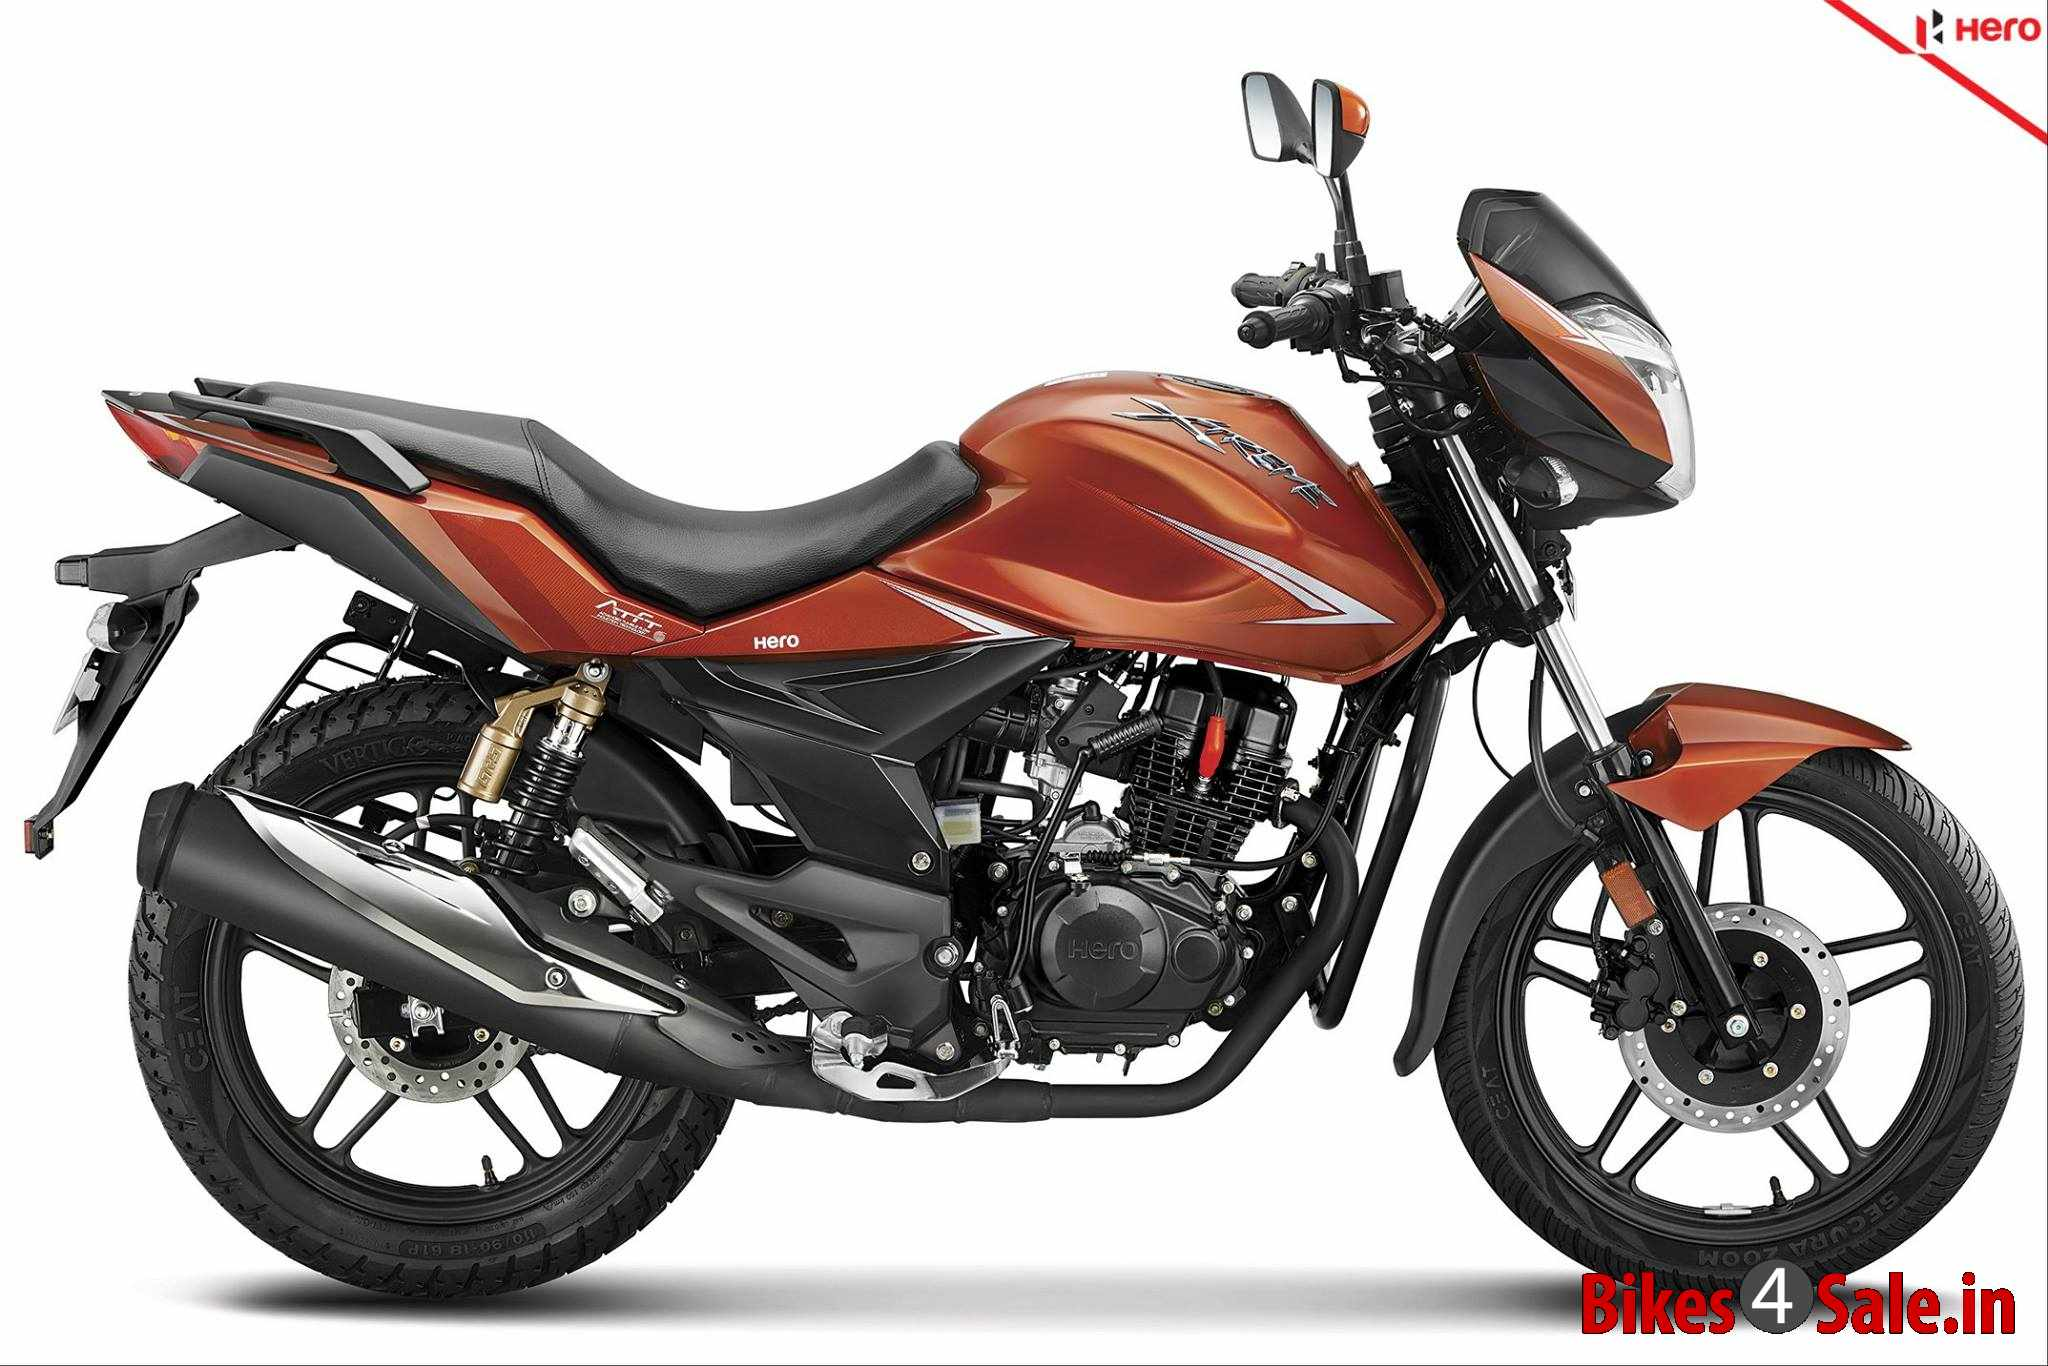 Hero Xtreme Motorcycle Picture Gallery. The all new 2014 Hero Xtreme